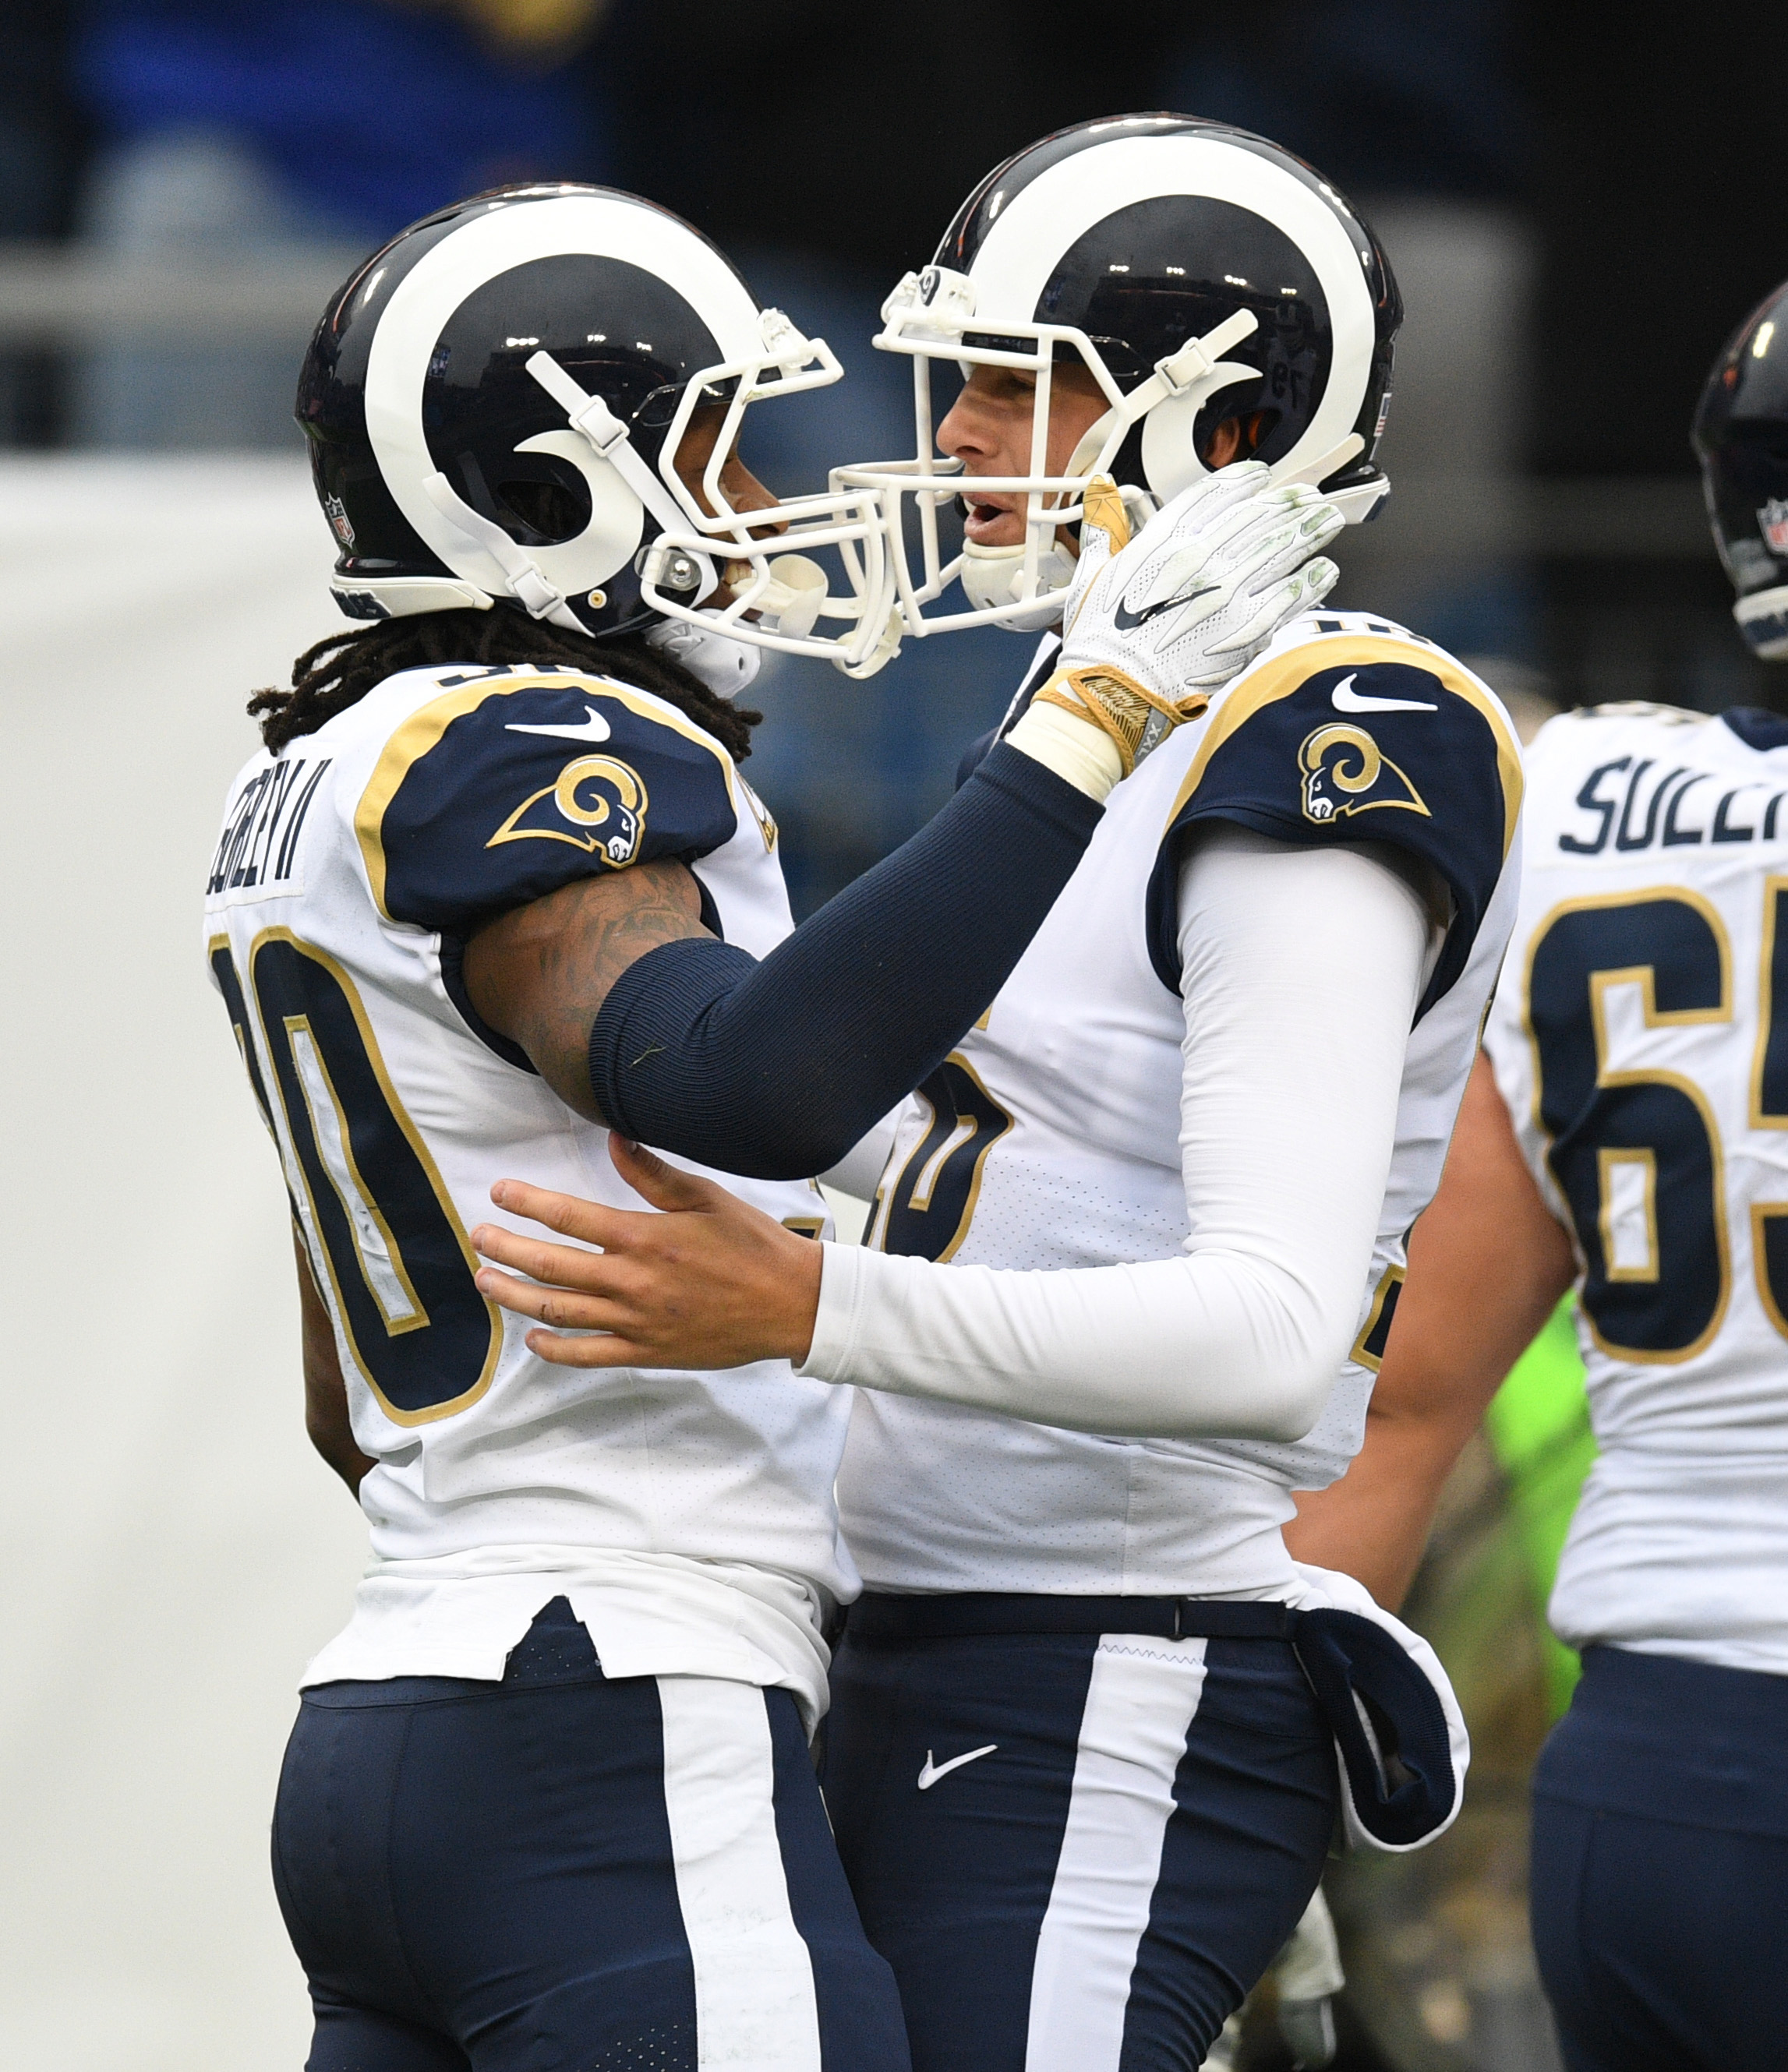 Los Angeles Rams RB Todd Gurley and QB Jared Goff celebrate an early touchdown against the Tennessee Titans